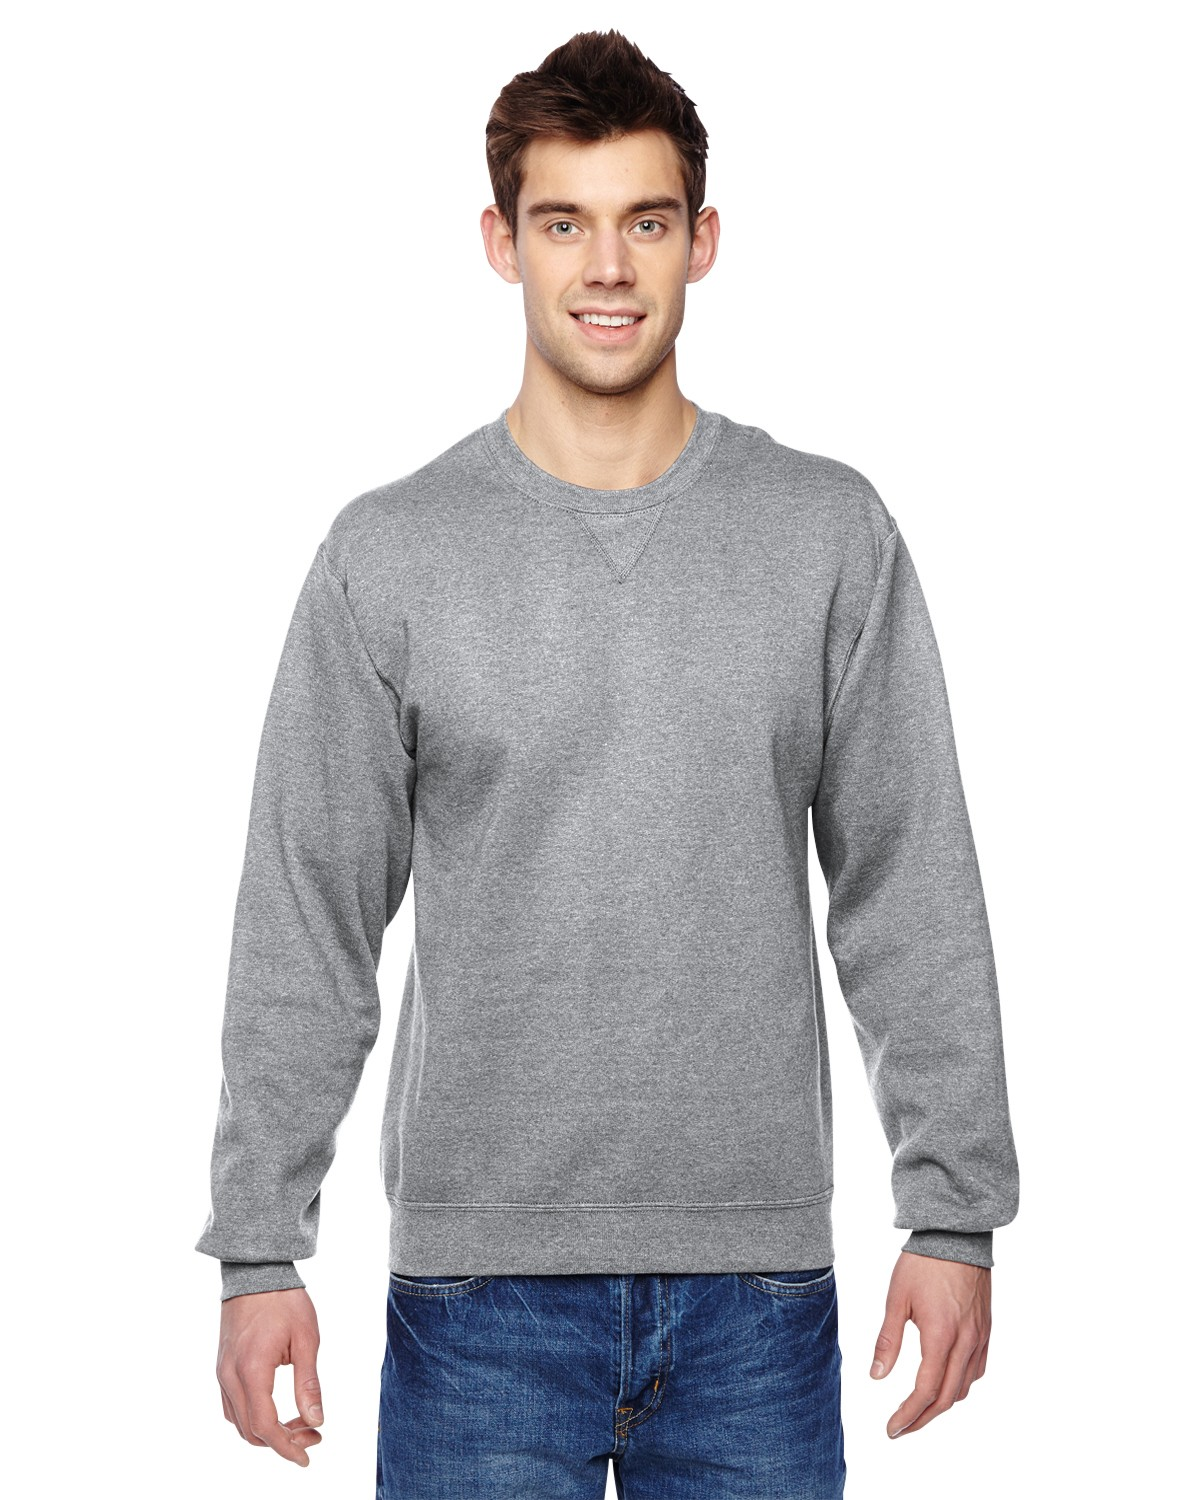 SF72R Fruit of the Loom ATHLETIC HEATHER